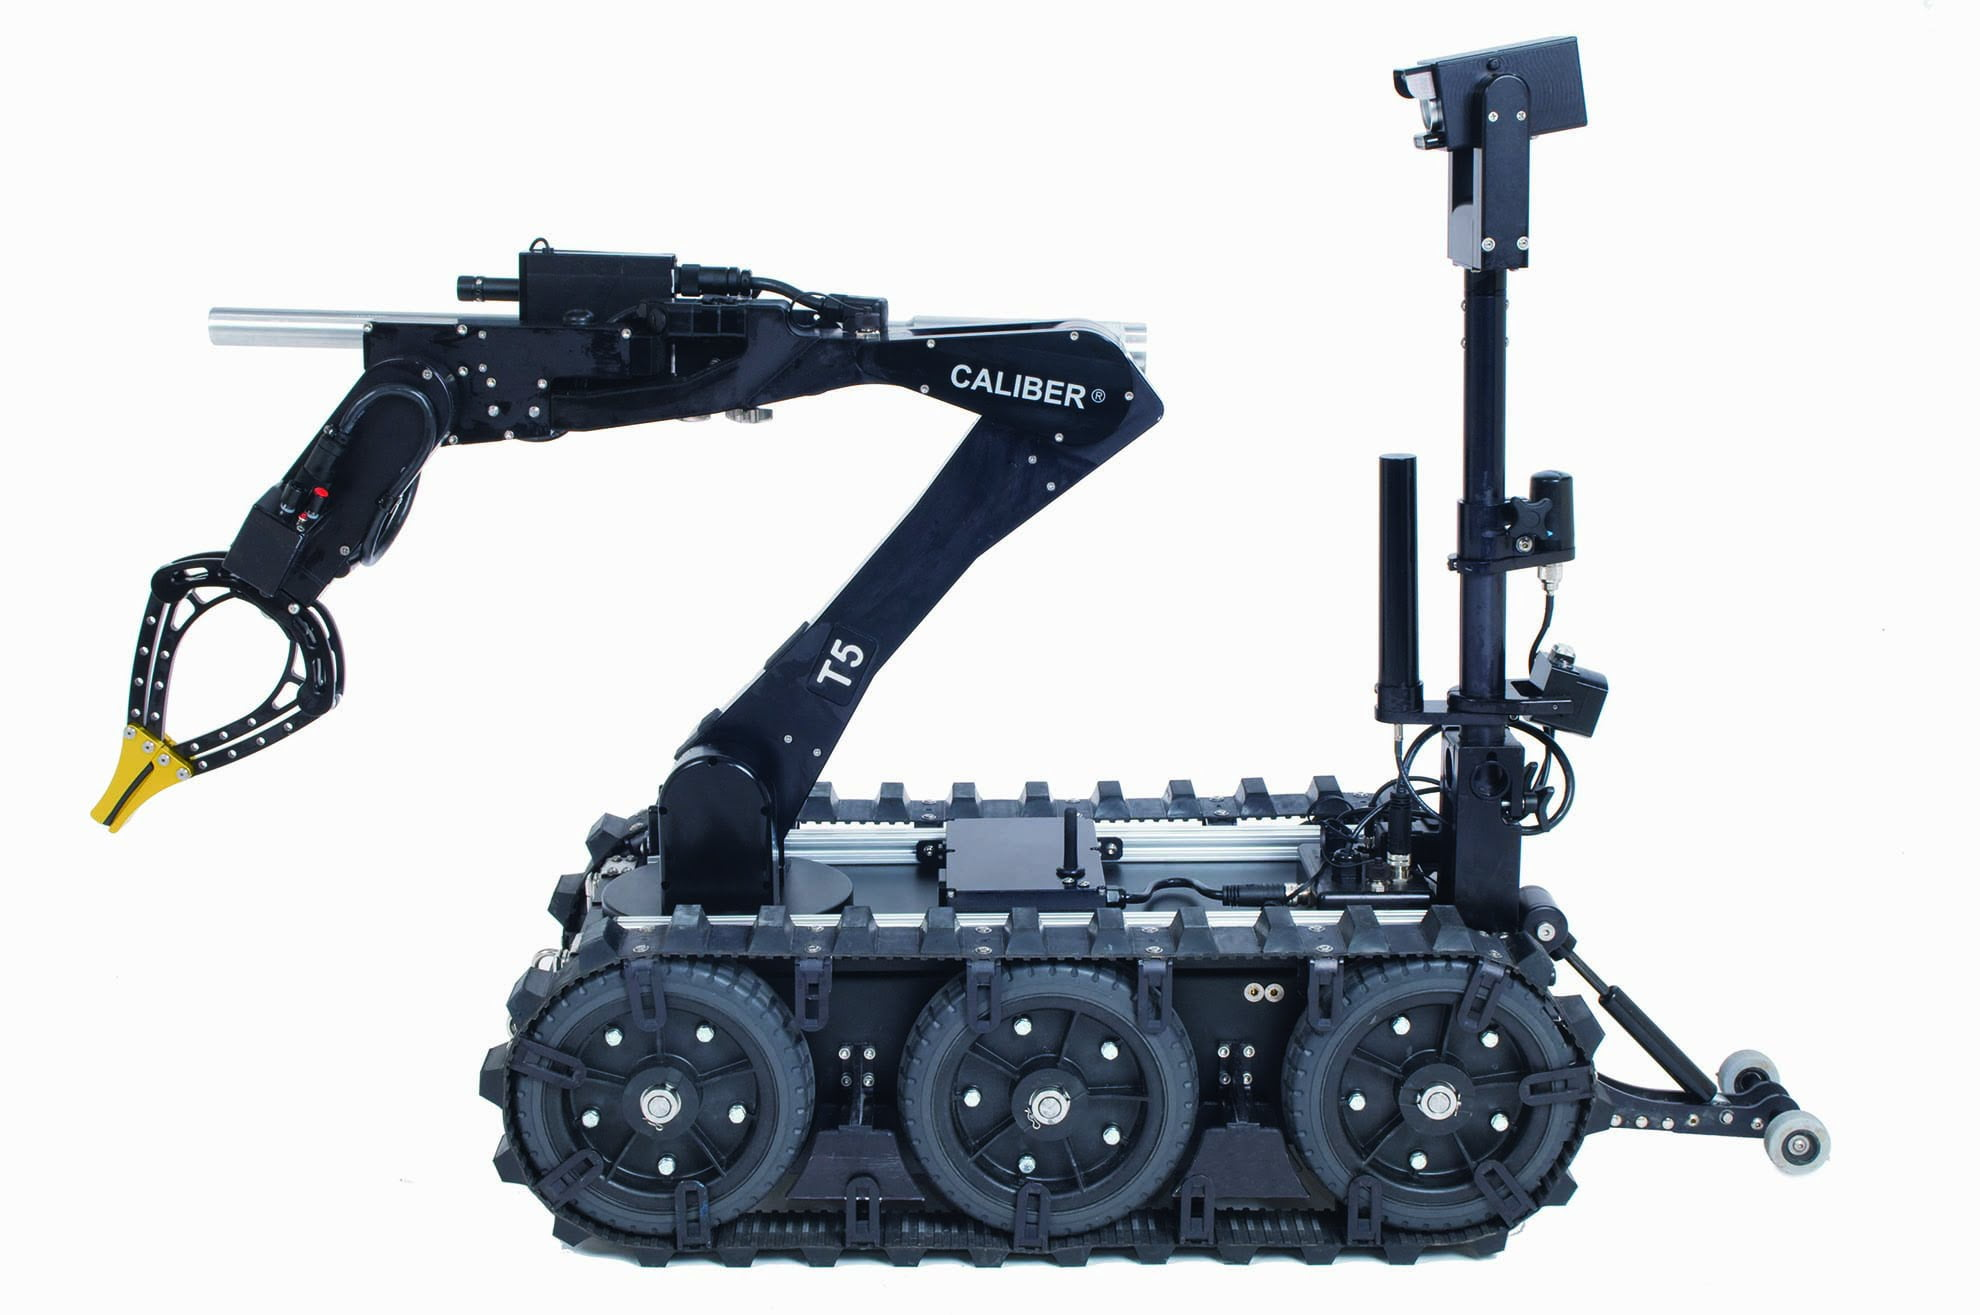 caliber-t5-swat-eod-robot-side-view